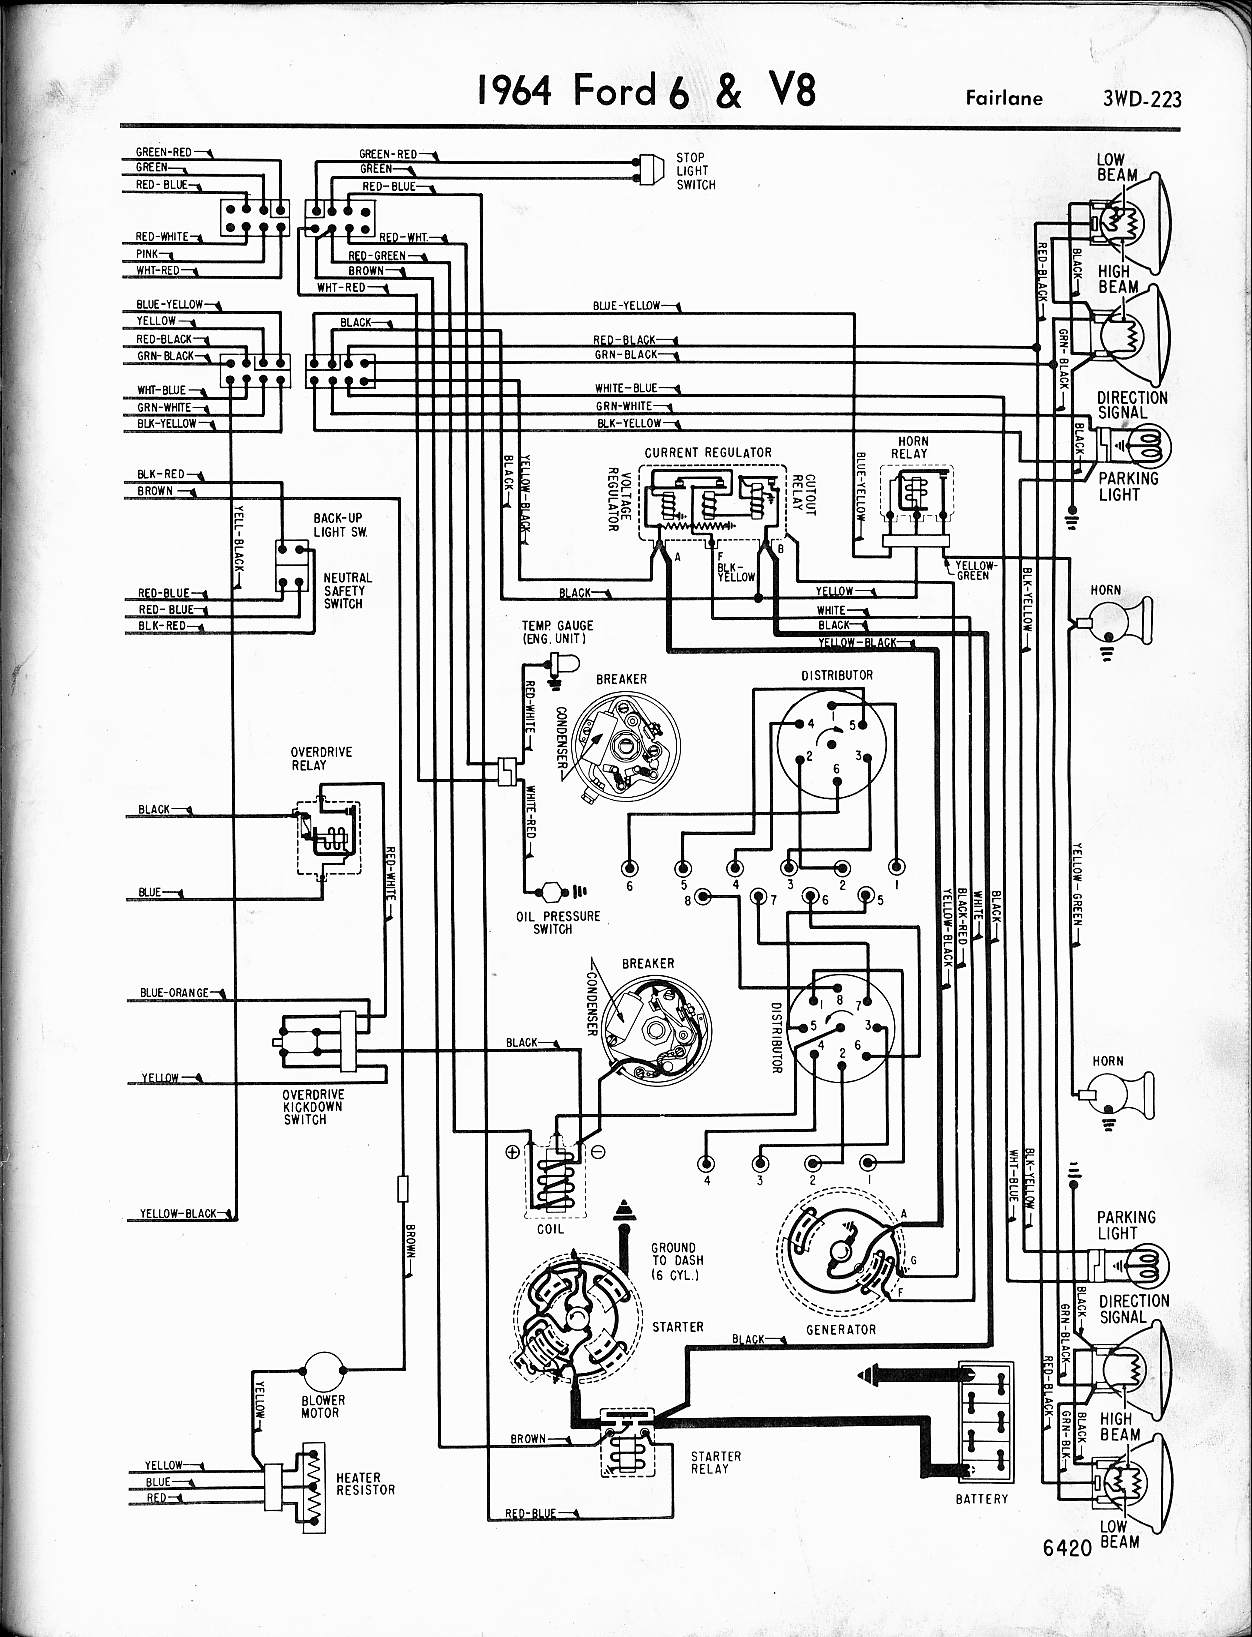 Wiring Diagram For 57 Ford - Technical Diagrams on